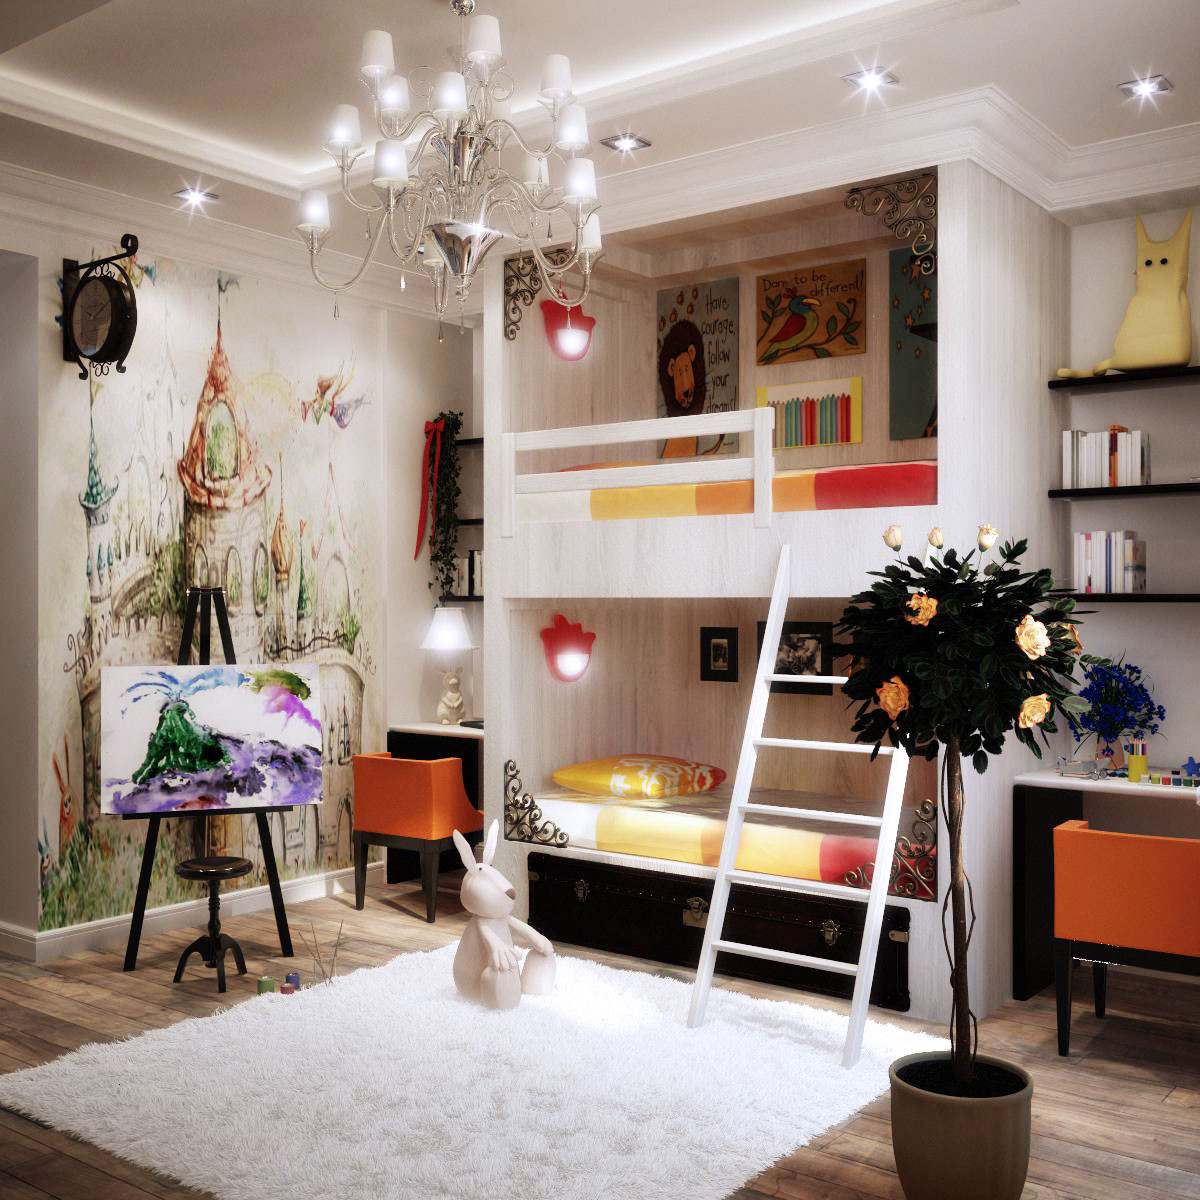 Best ideas about Kids Room Ideas . Save or Pin Colorful Kids Rooms Now.